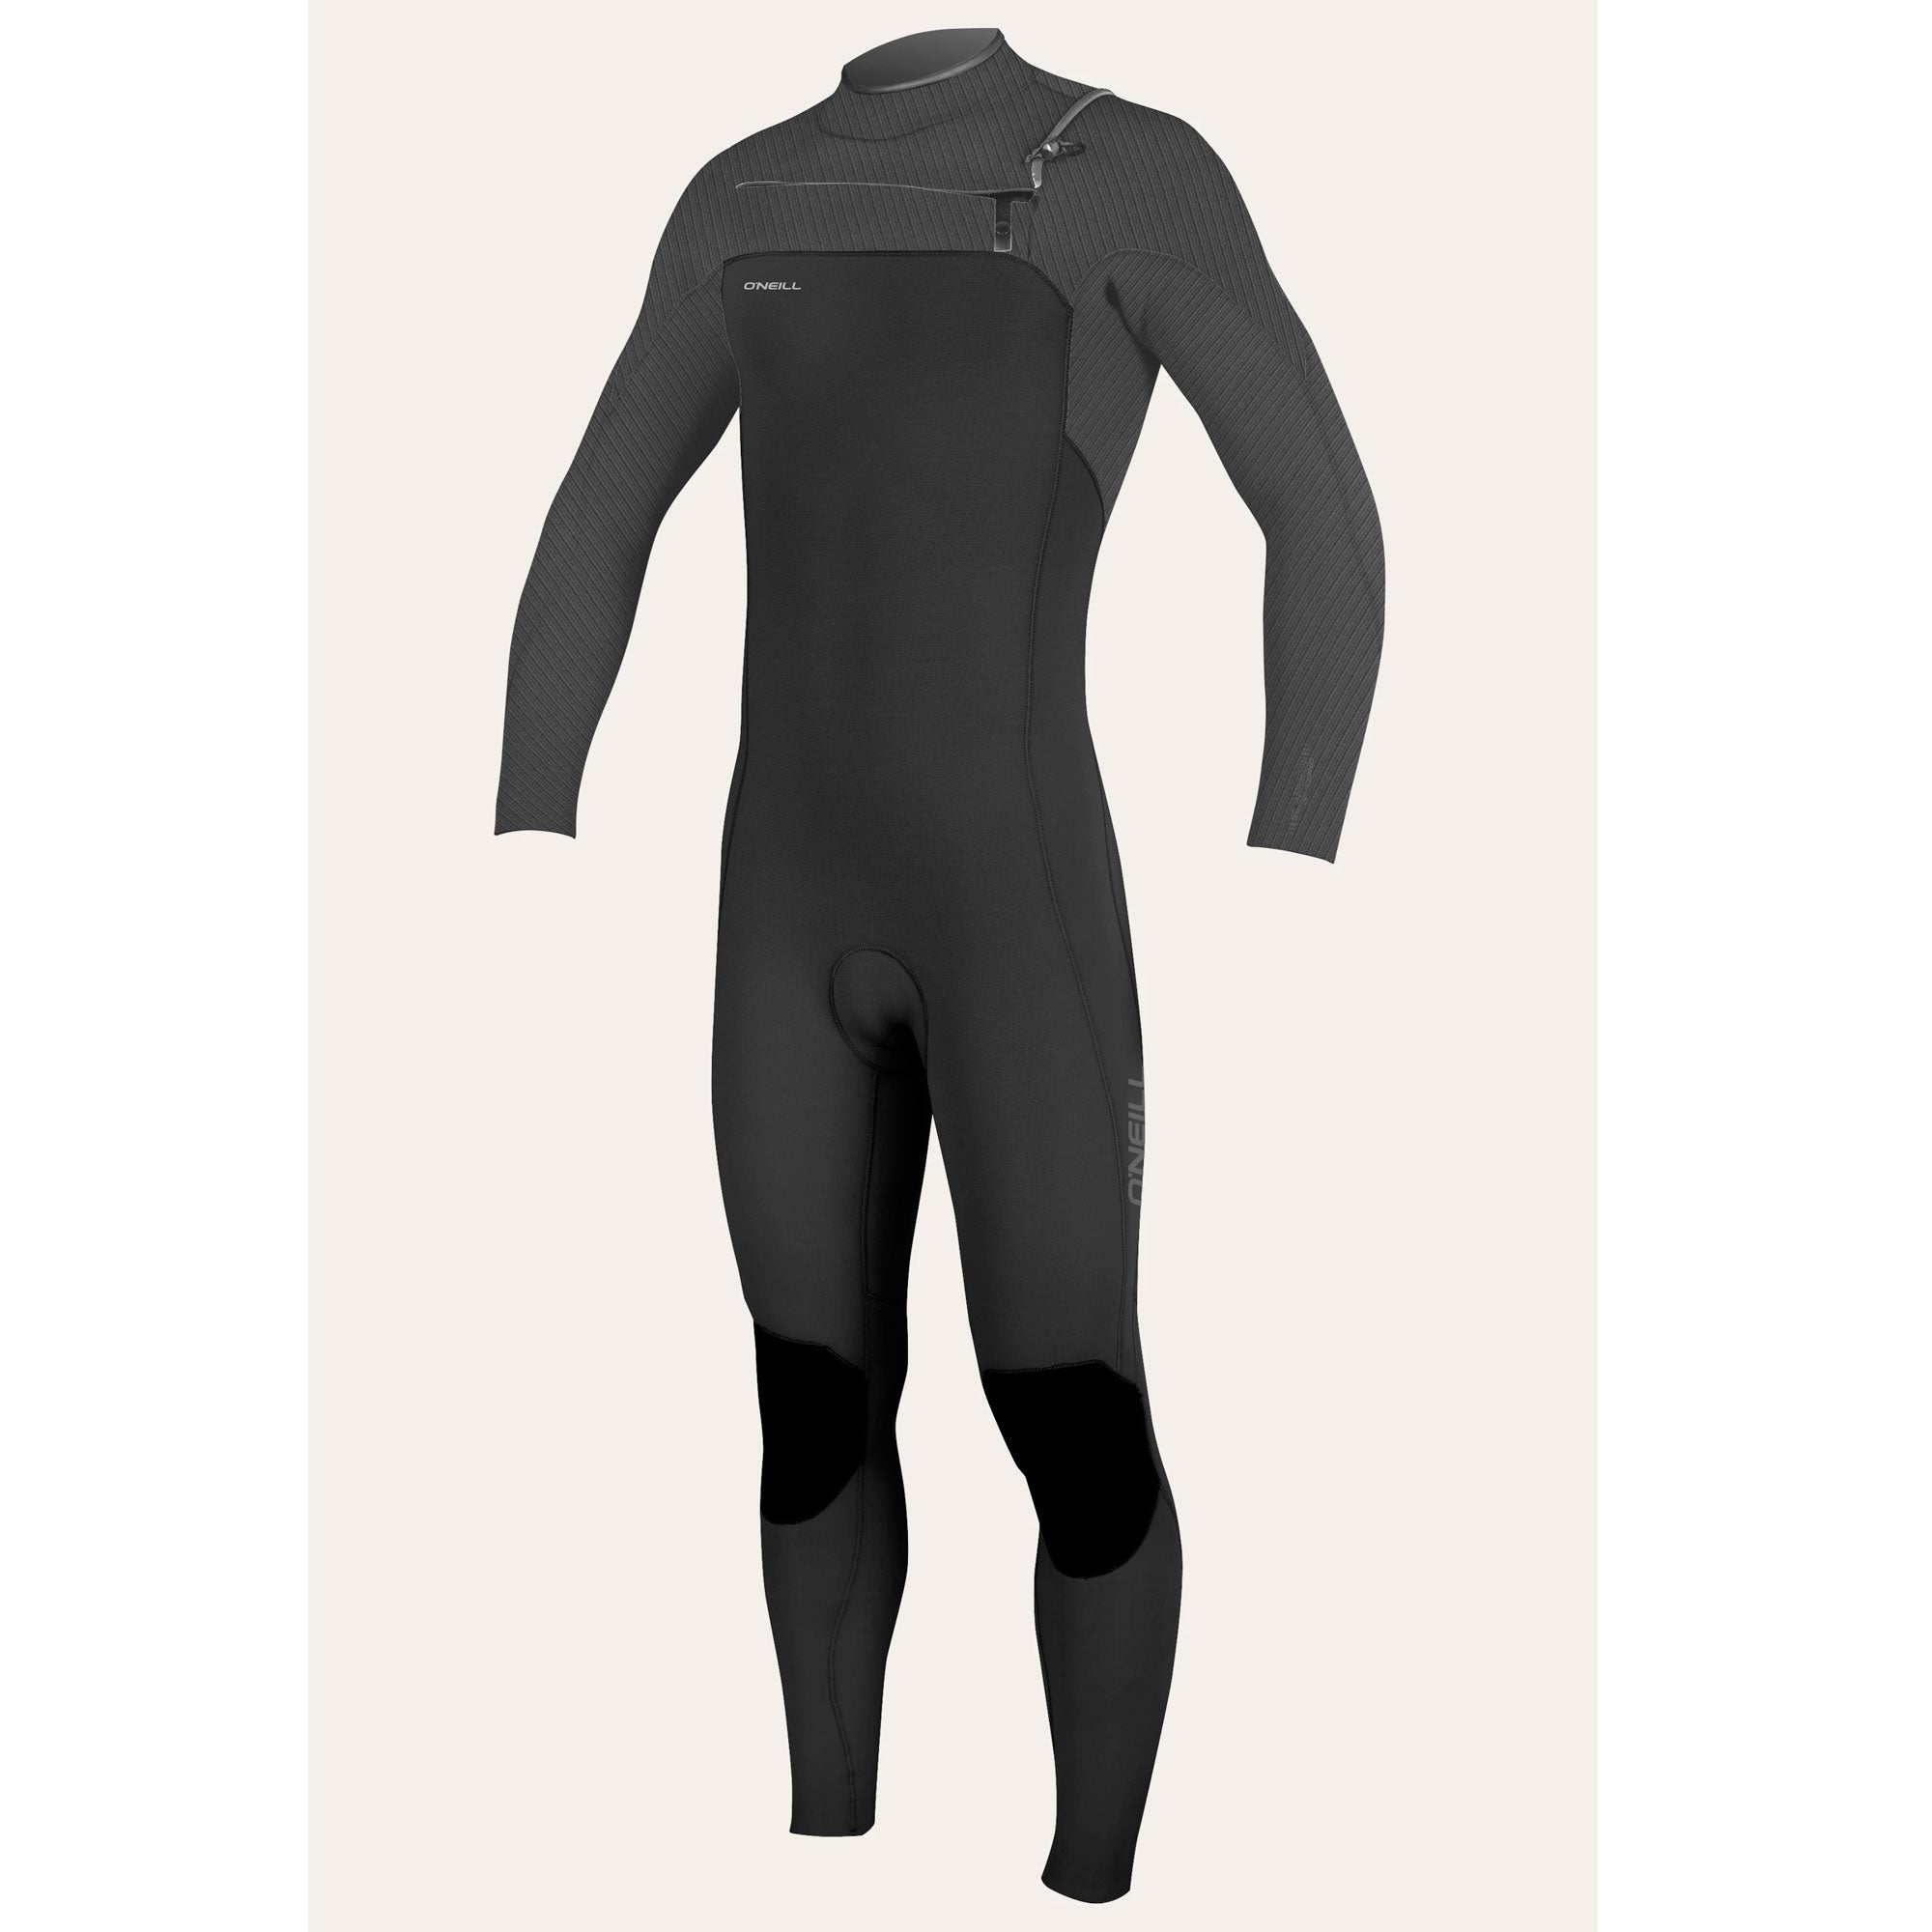 O'Neill Hyperfreak TB3 3/2mm Youth Chest Zip Wetsuit